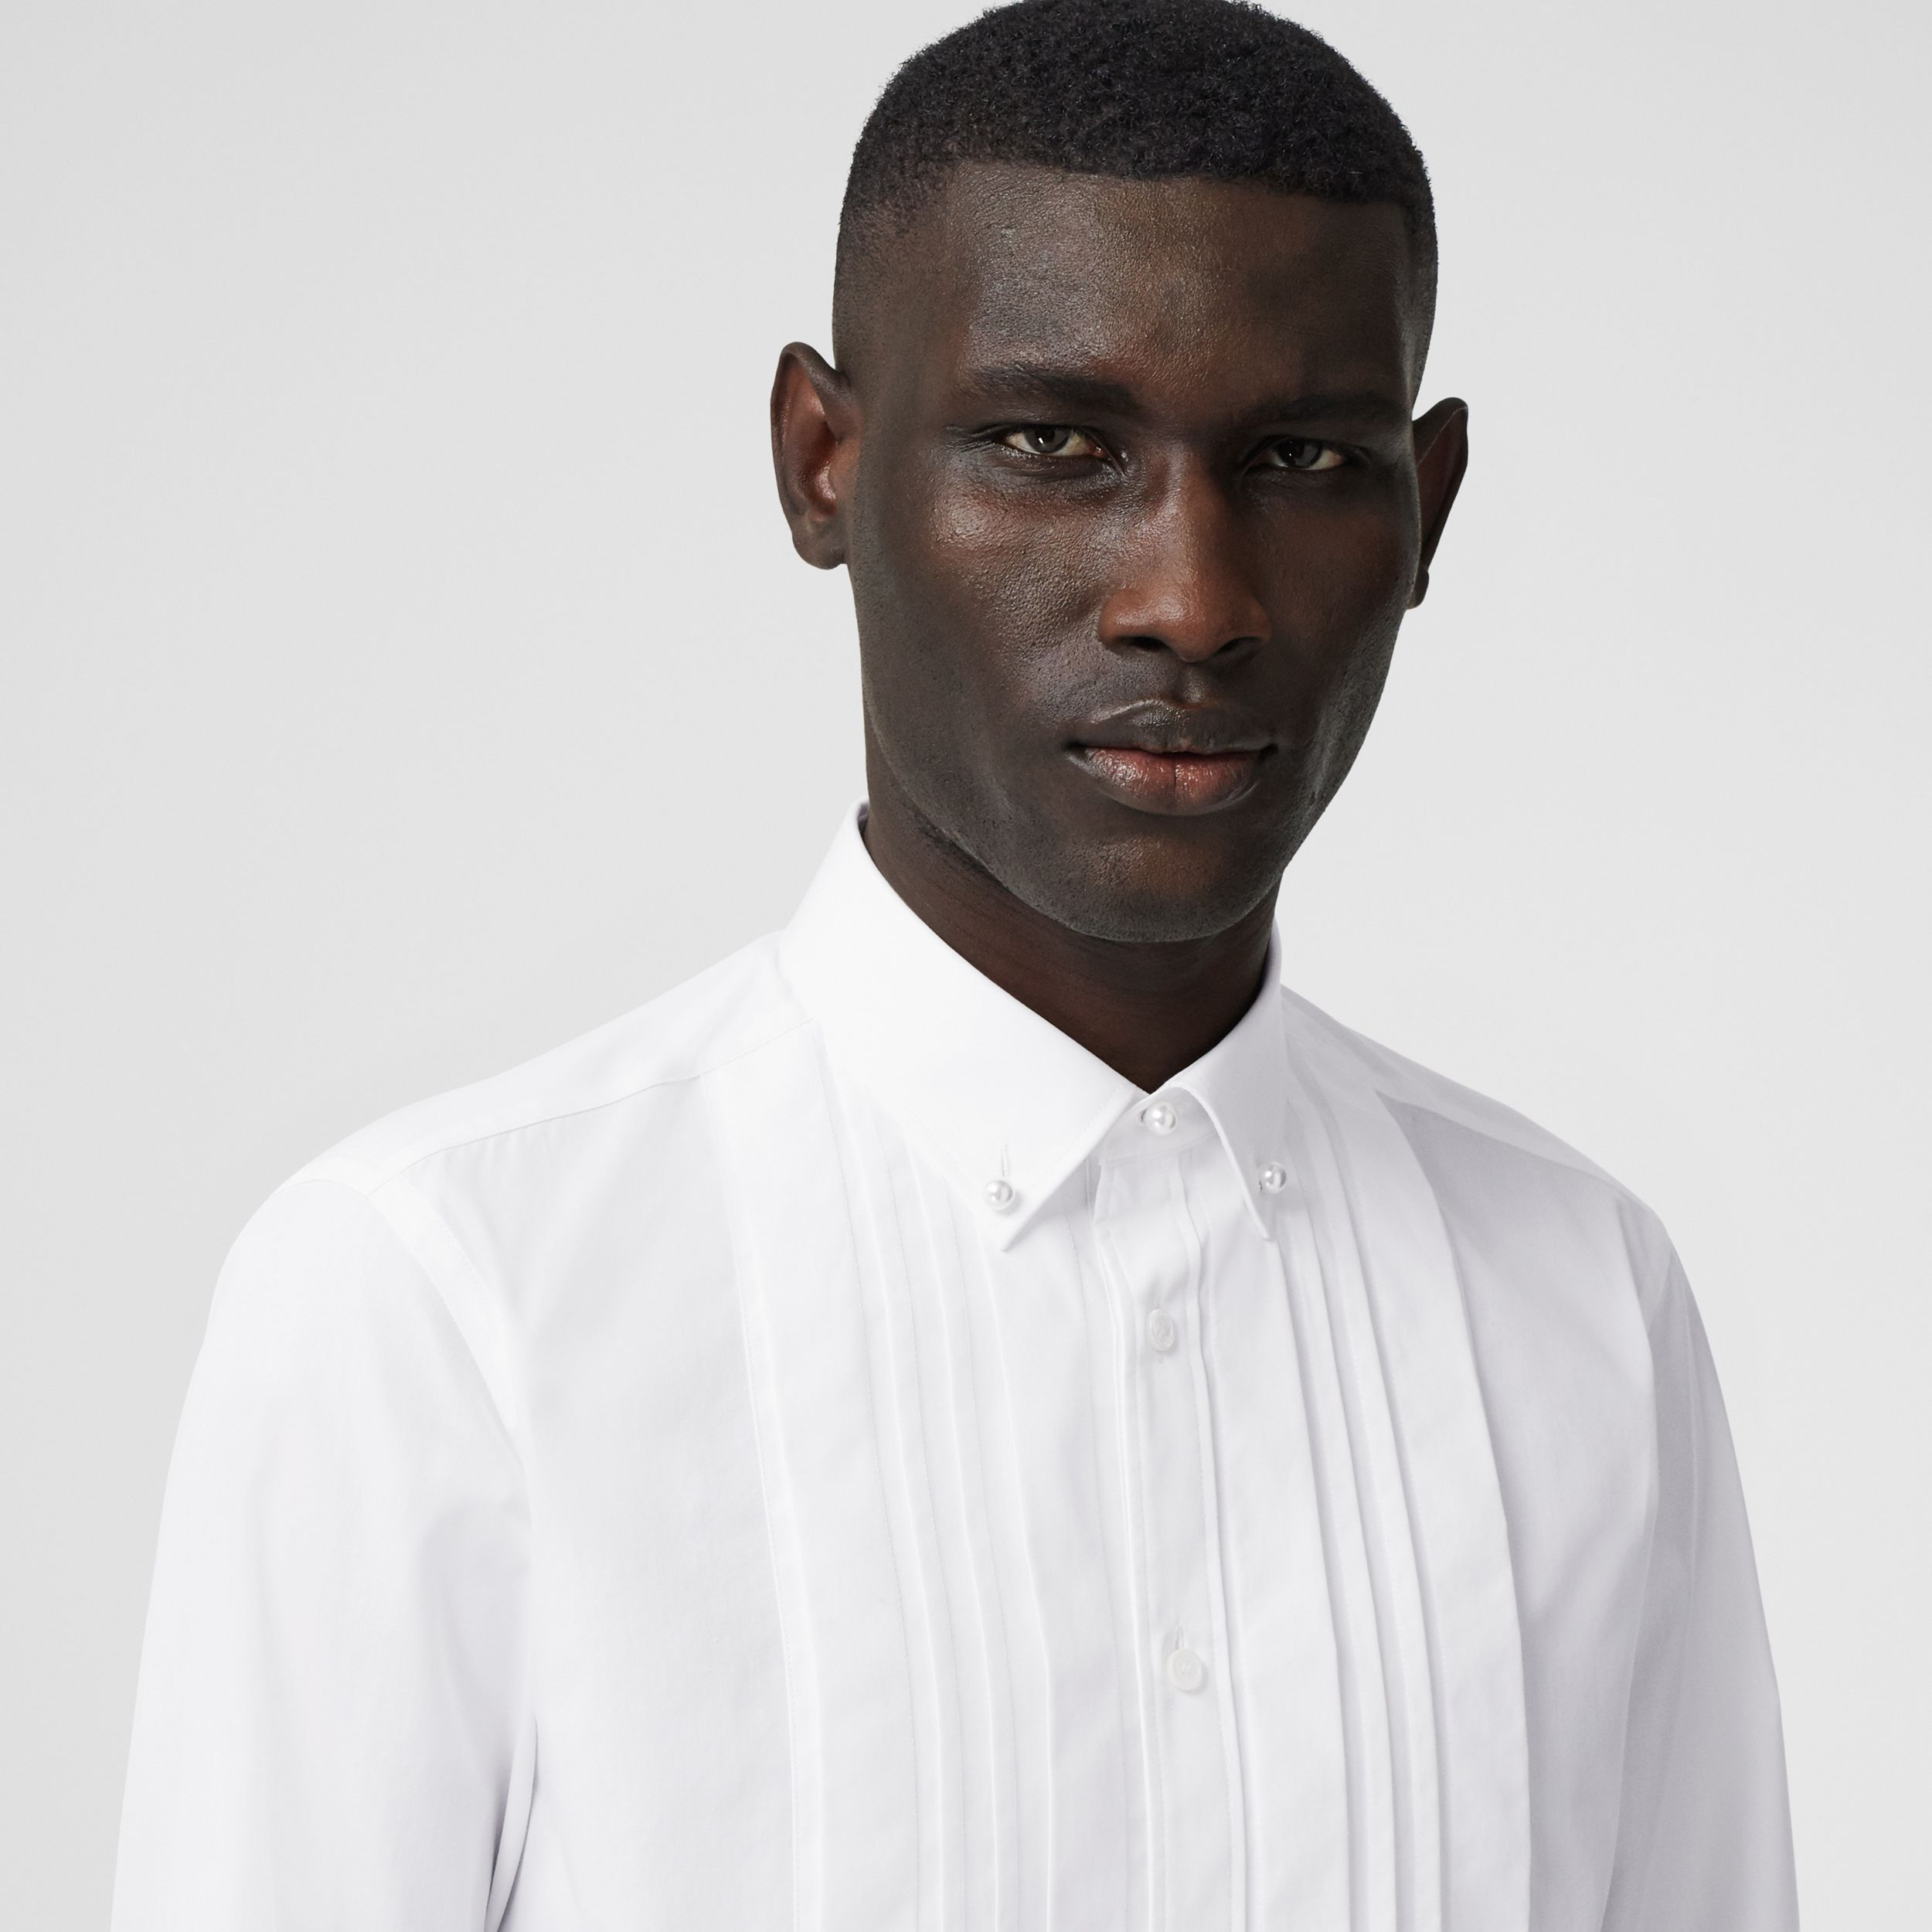 Resin Pearl Detail Cotton Poplin Dress Shirt in White - Men | Burberry - 2